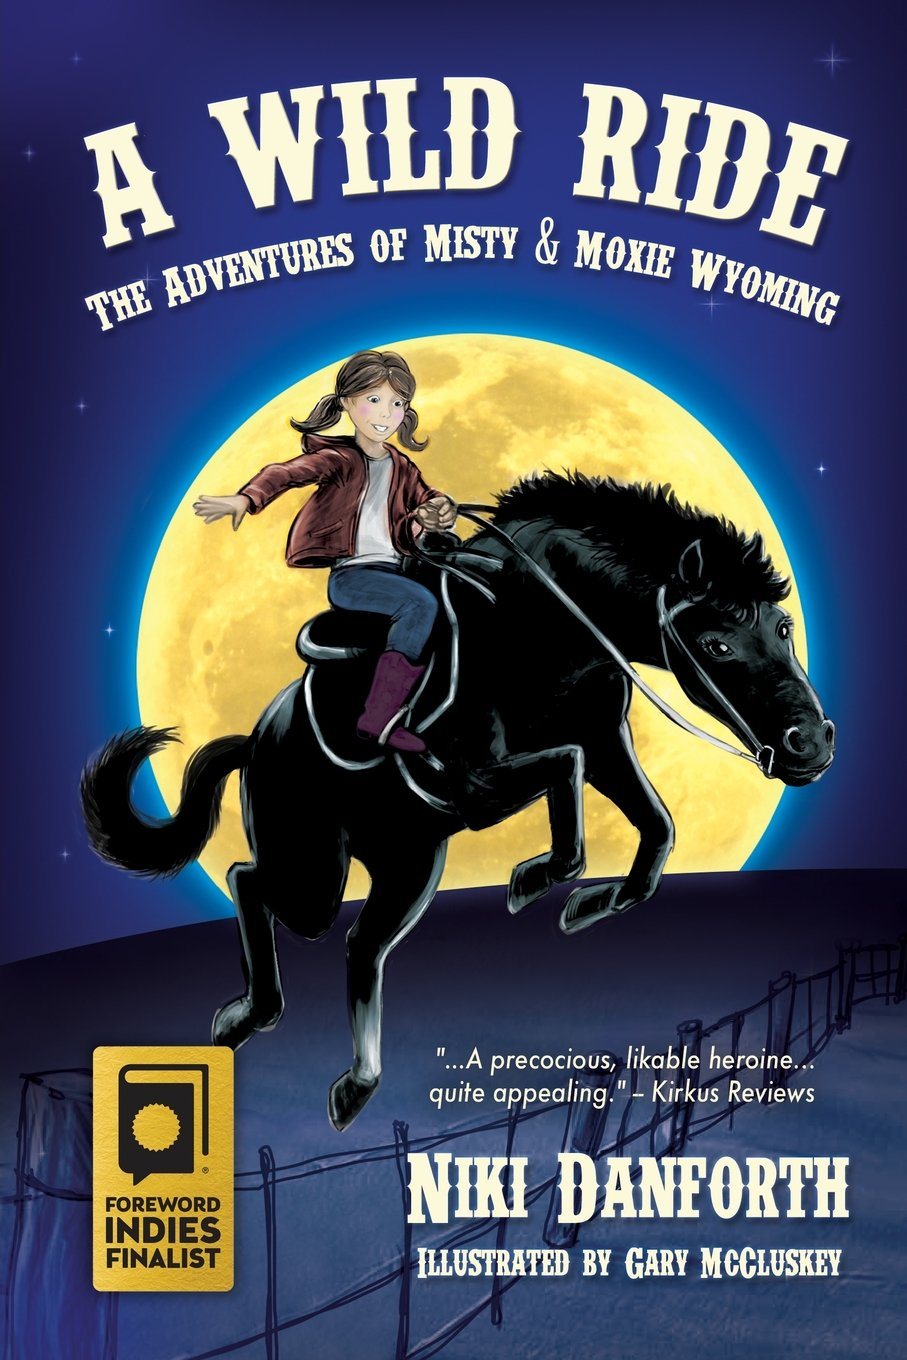 Download A Wild Ride: The Adventures of Misty & Moxie Wyoming (Girl Detective & Her Horse Mystery Story Ages 6-8 & 9-12) (Volume 1) PDF